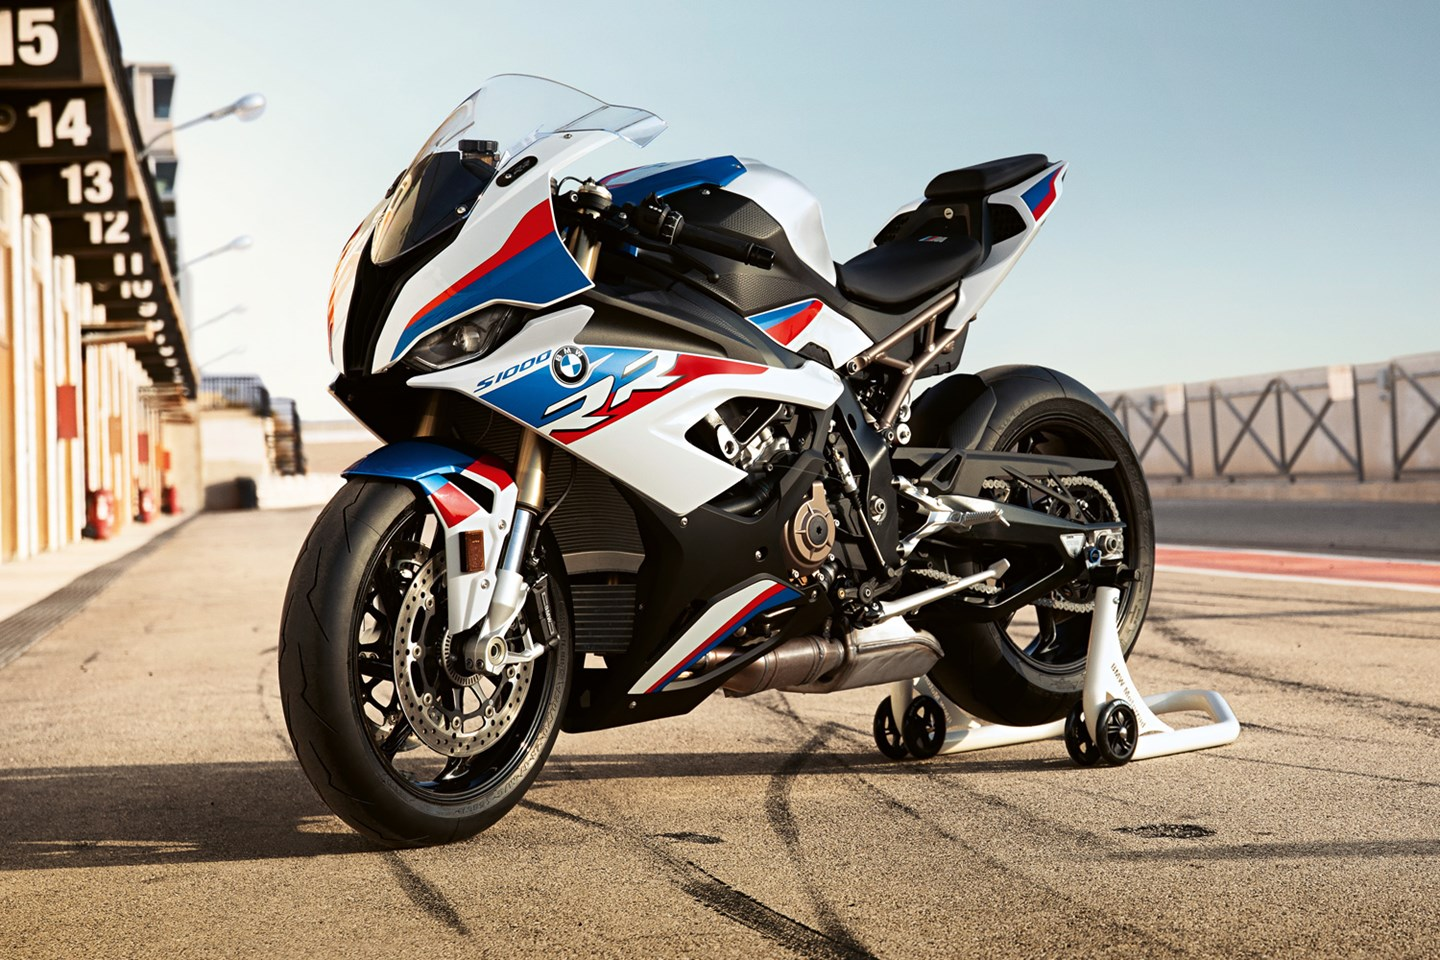 A BMW S1000RR motorcycle in the pits at a racetrack at dusk